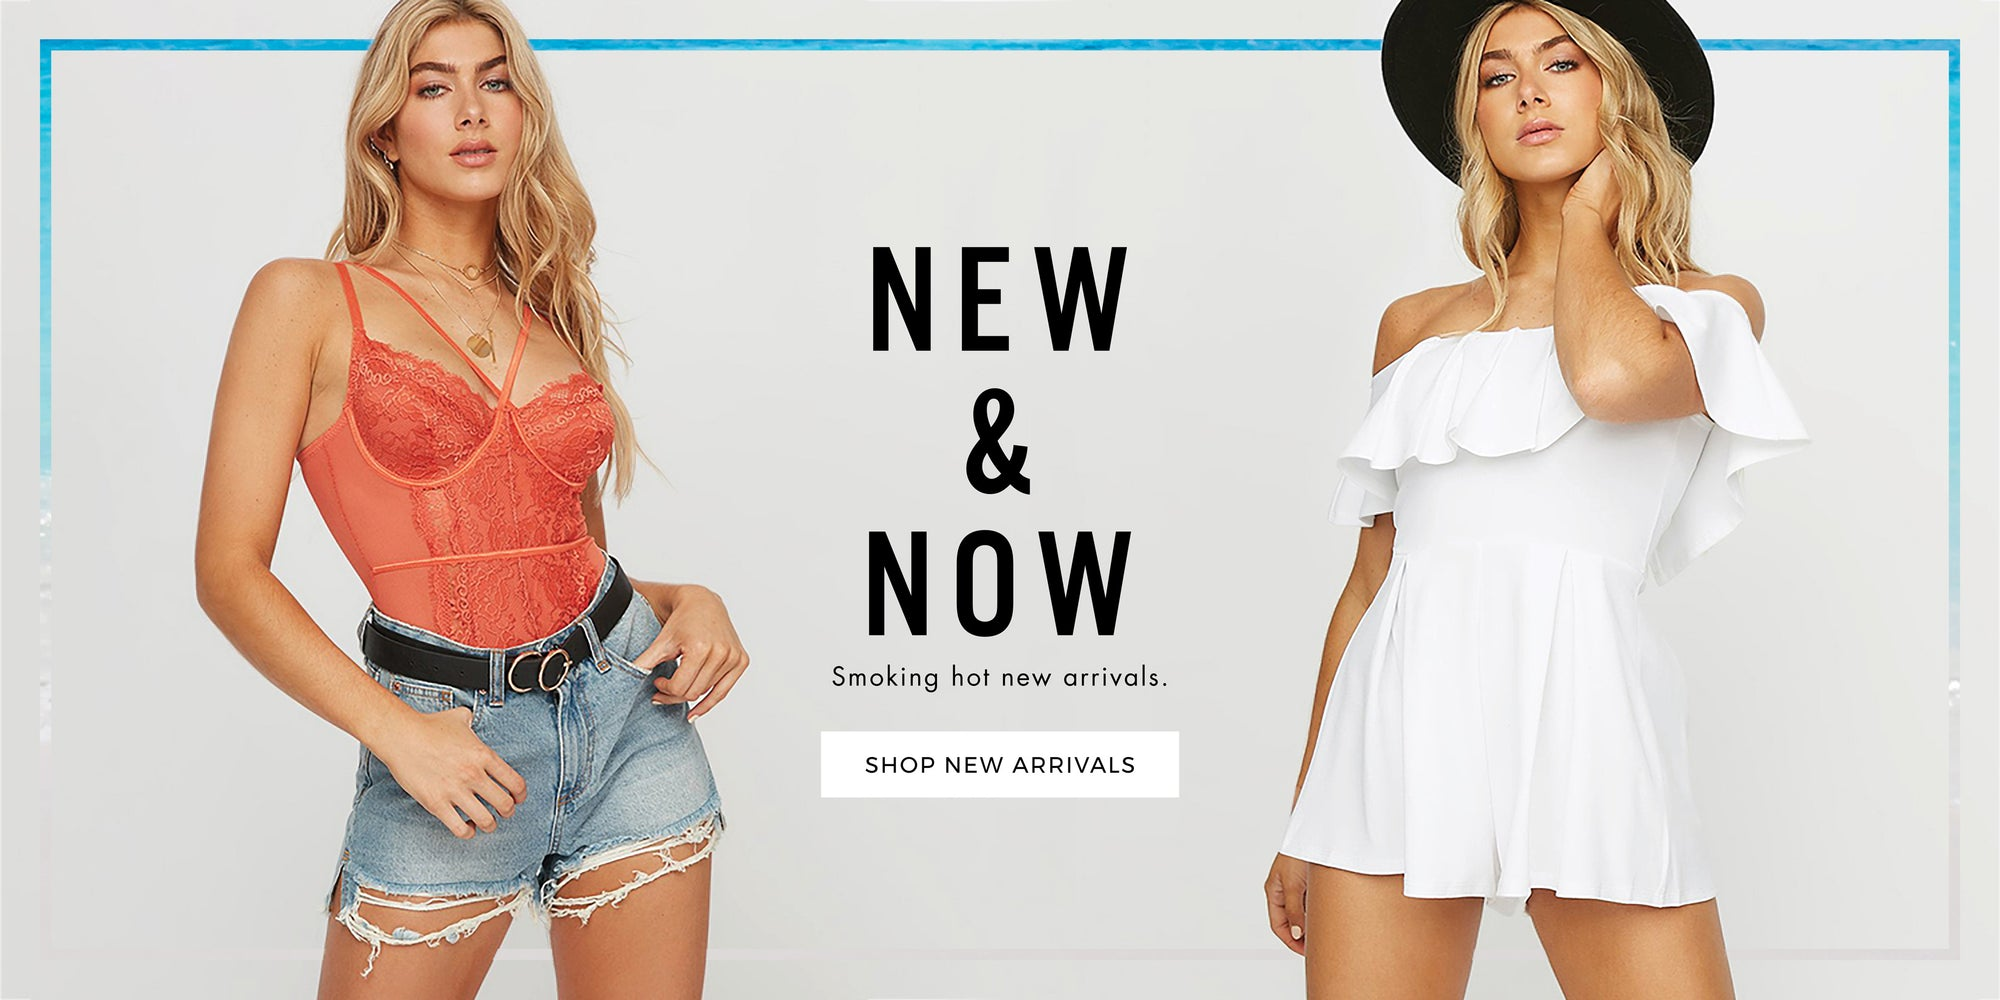 New & Now - Smoking hot new arrivals - Shop New Arrivals